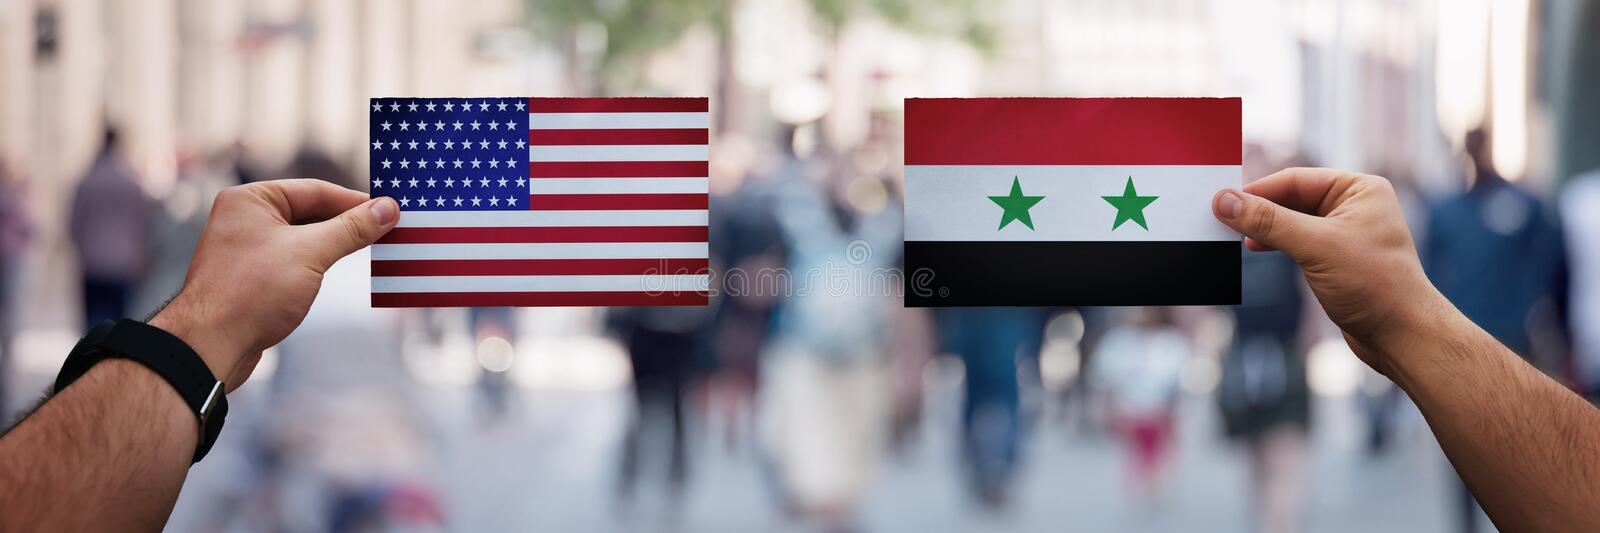 Two hands holding different flags, USA vs Syria on politics arena, relations between countries. Cooperation or opposite conflict royalty free stock photo